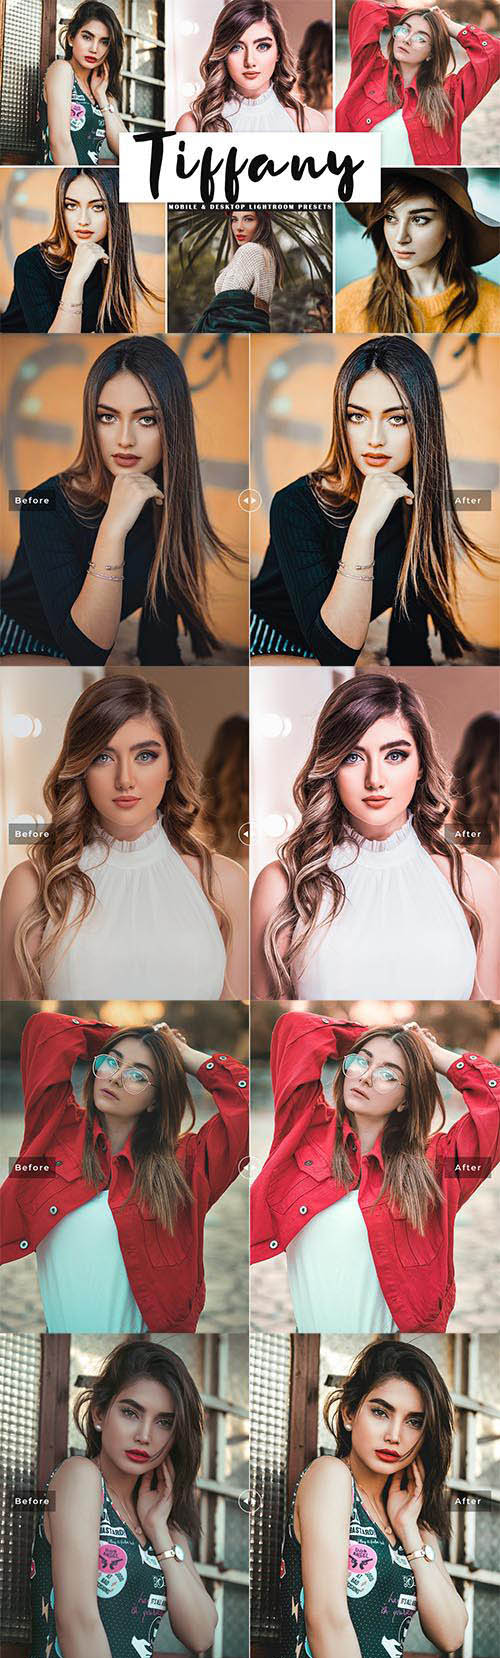 Tiffany Mobile & Desktop Lightroom Presets